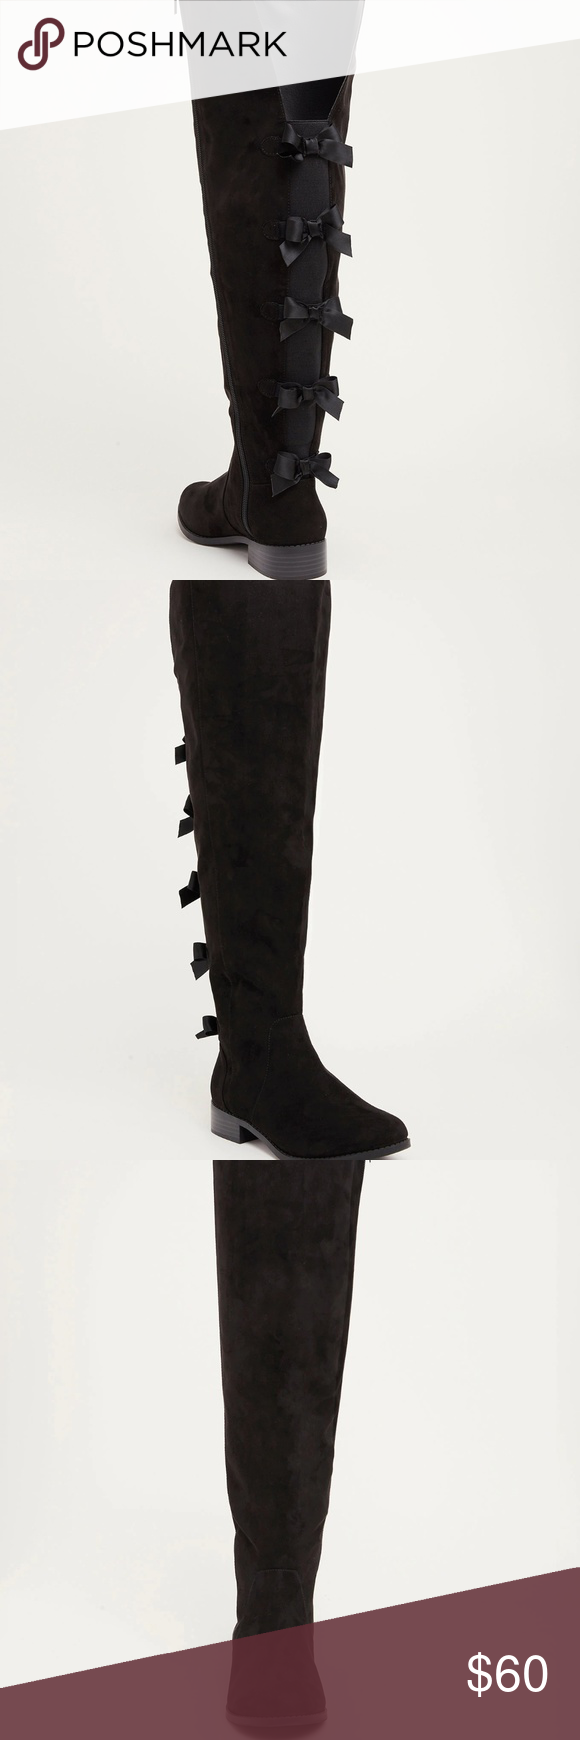 2db66793e4a Torrid Boots Wide Calf Black Bow Back Zip Tall Bow Back Over the Knee High  Boots By TORRID New with box Size 12 Wide Approx. Length Inside  11 1 4